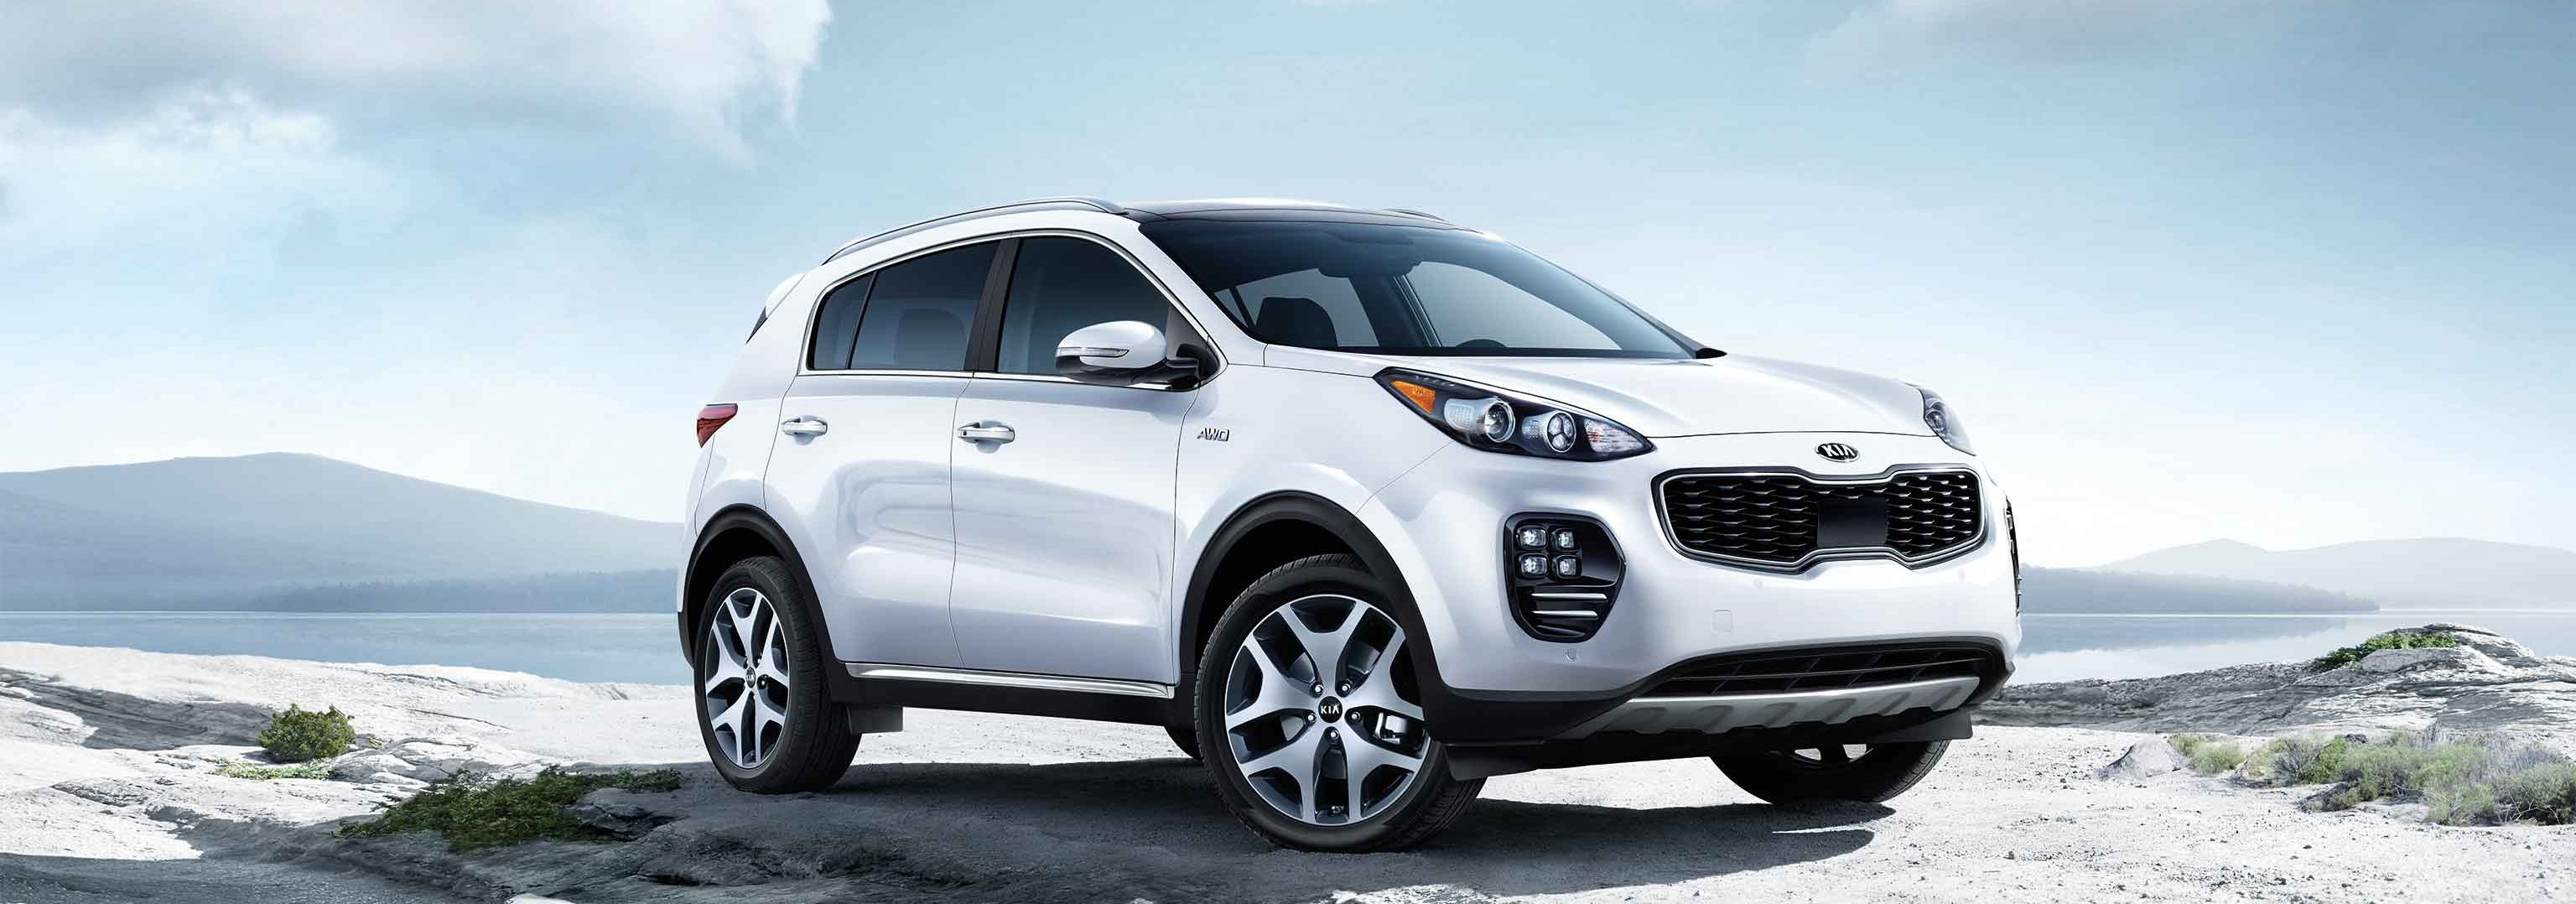 2017 kia sportage for sale in honolulu hi aloha kia. Black Bedroom Furniture Sets. Home Design Ideas